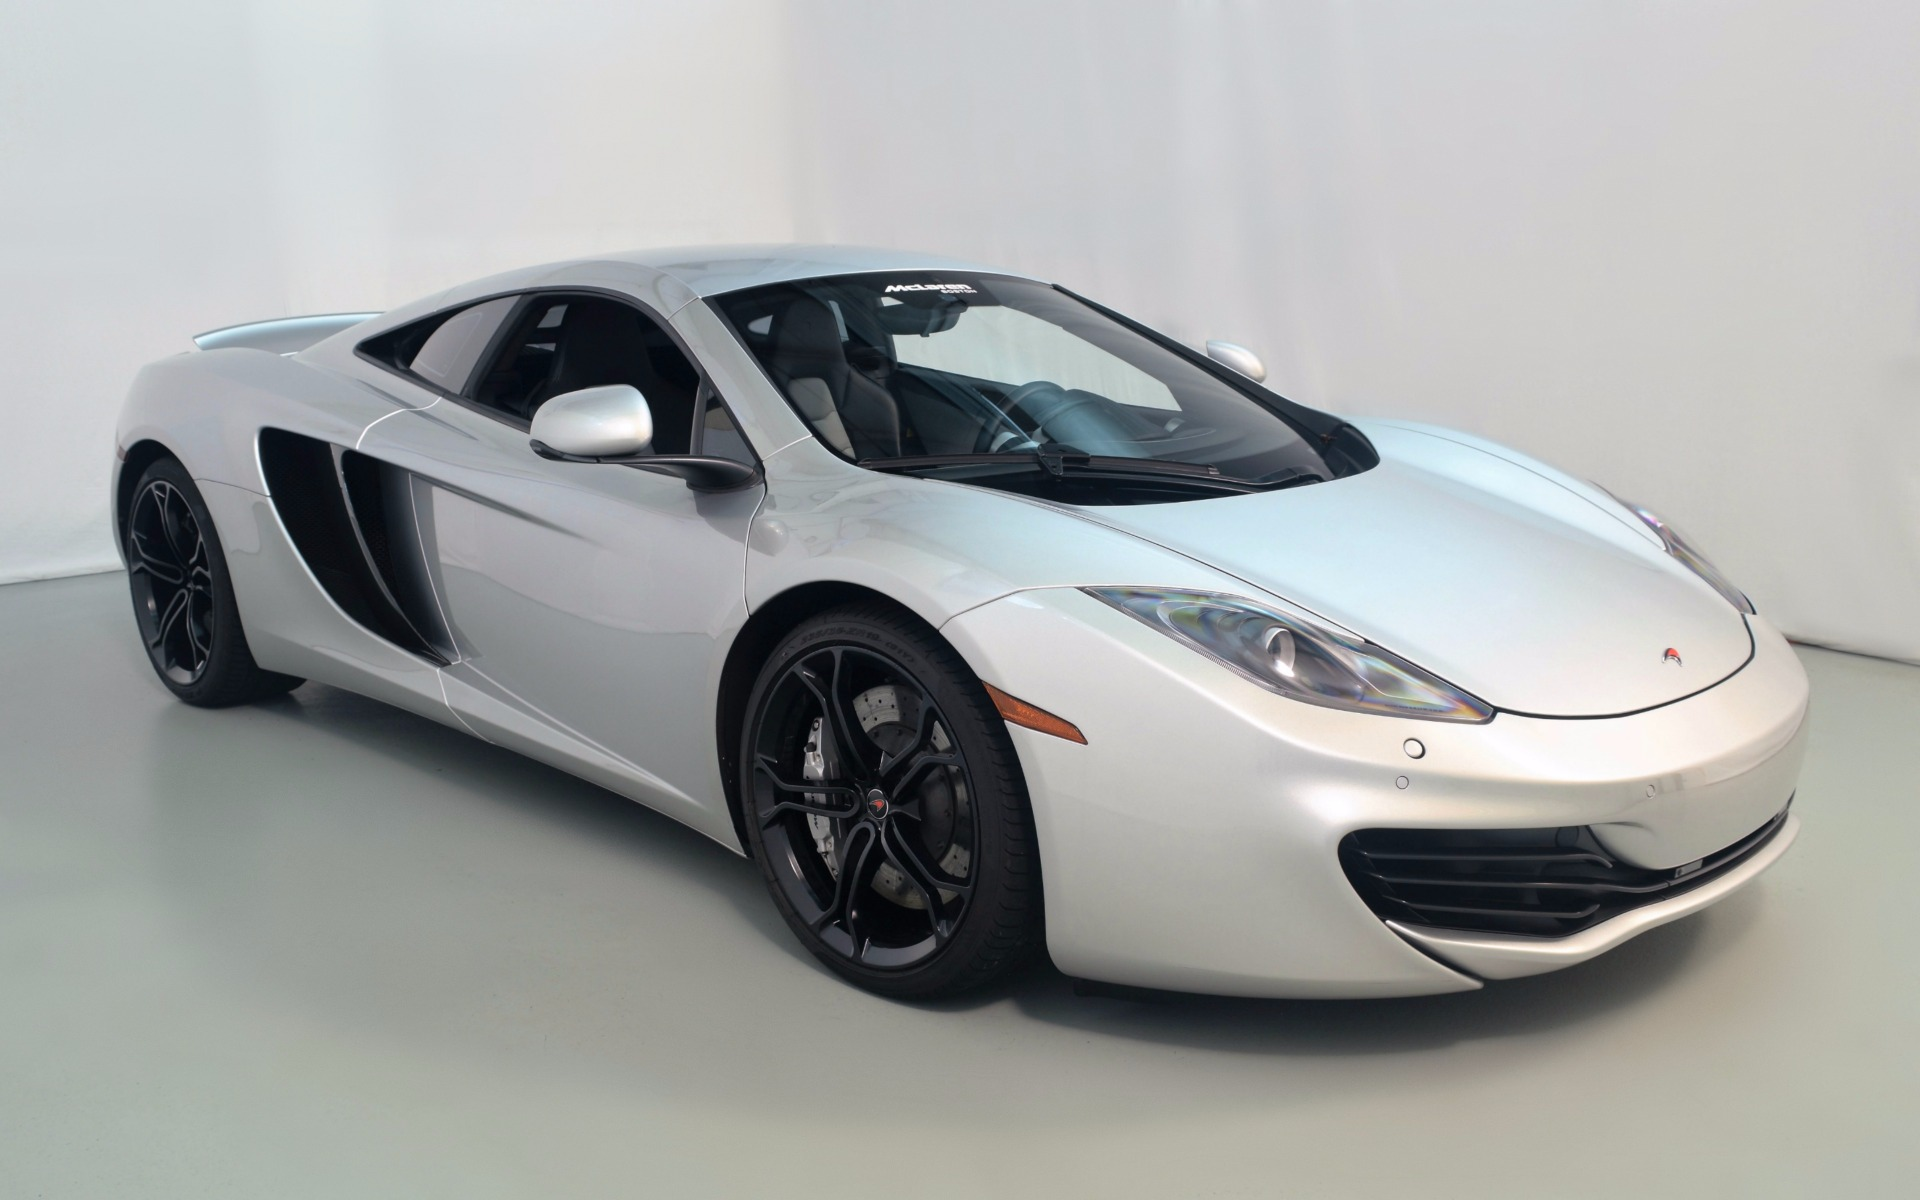 2012 mclaren mp4 12c for sale in norwell ma 000531. Black Bedroom Furniture Sets. Home Design Ideas